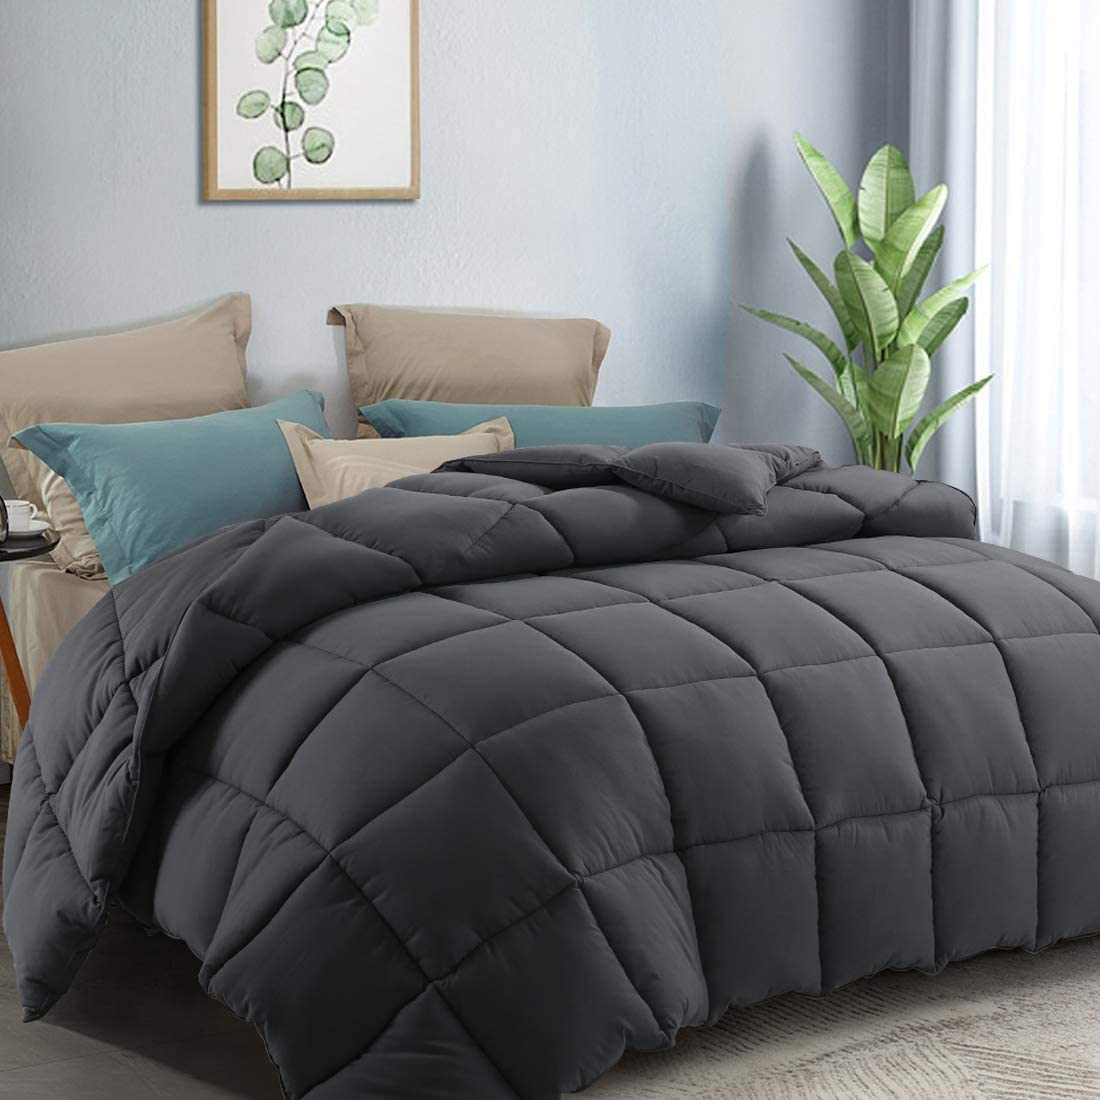 COTTONHOUSE Twin Size Cooling Comforter Fluffy Reversible Quilted Duvet Insert Down Alternative Fill with Corner Tabs All Season - Machine Washable - Darkgrey